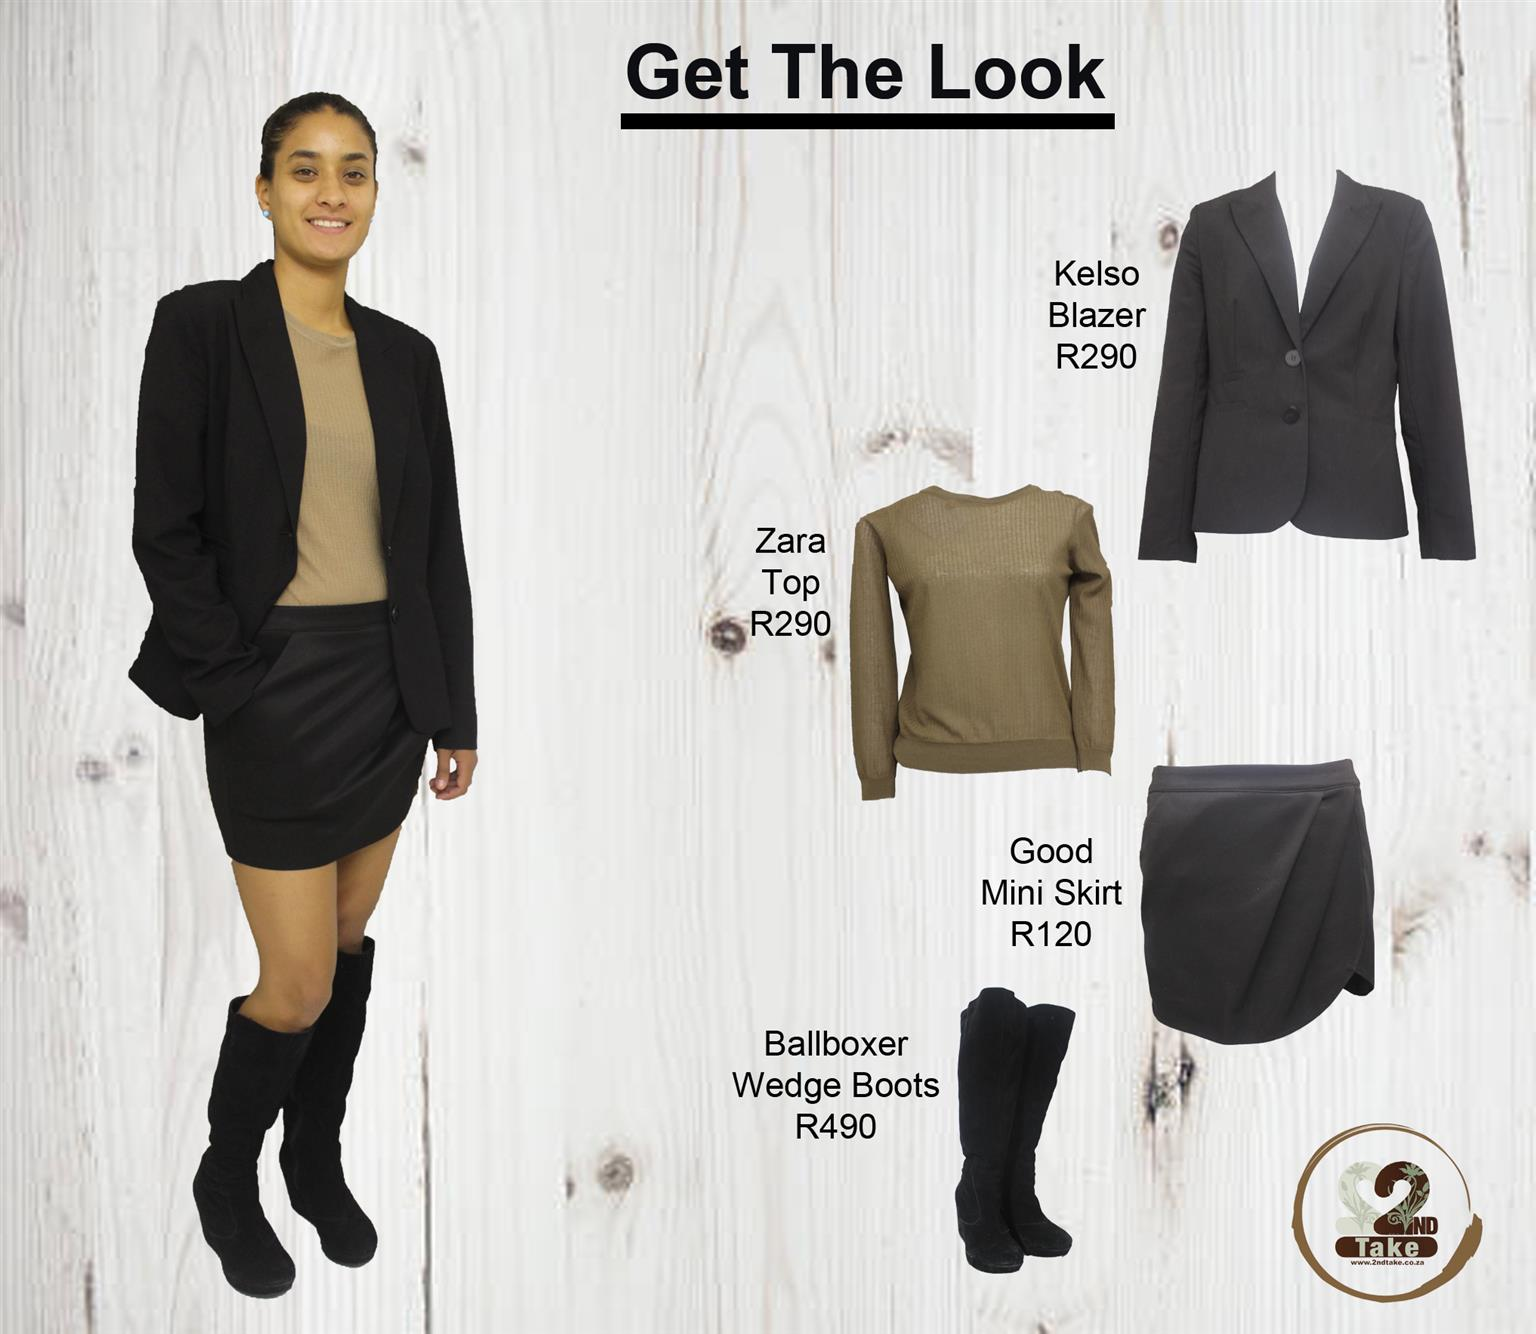 Mix & match gorgeous designer clothing and perfect accessories at unbelievably good prices!